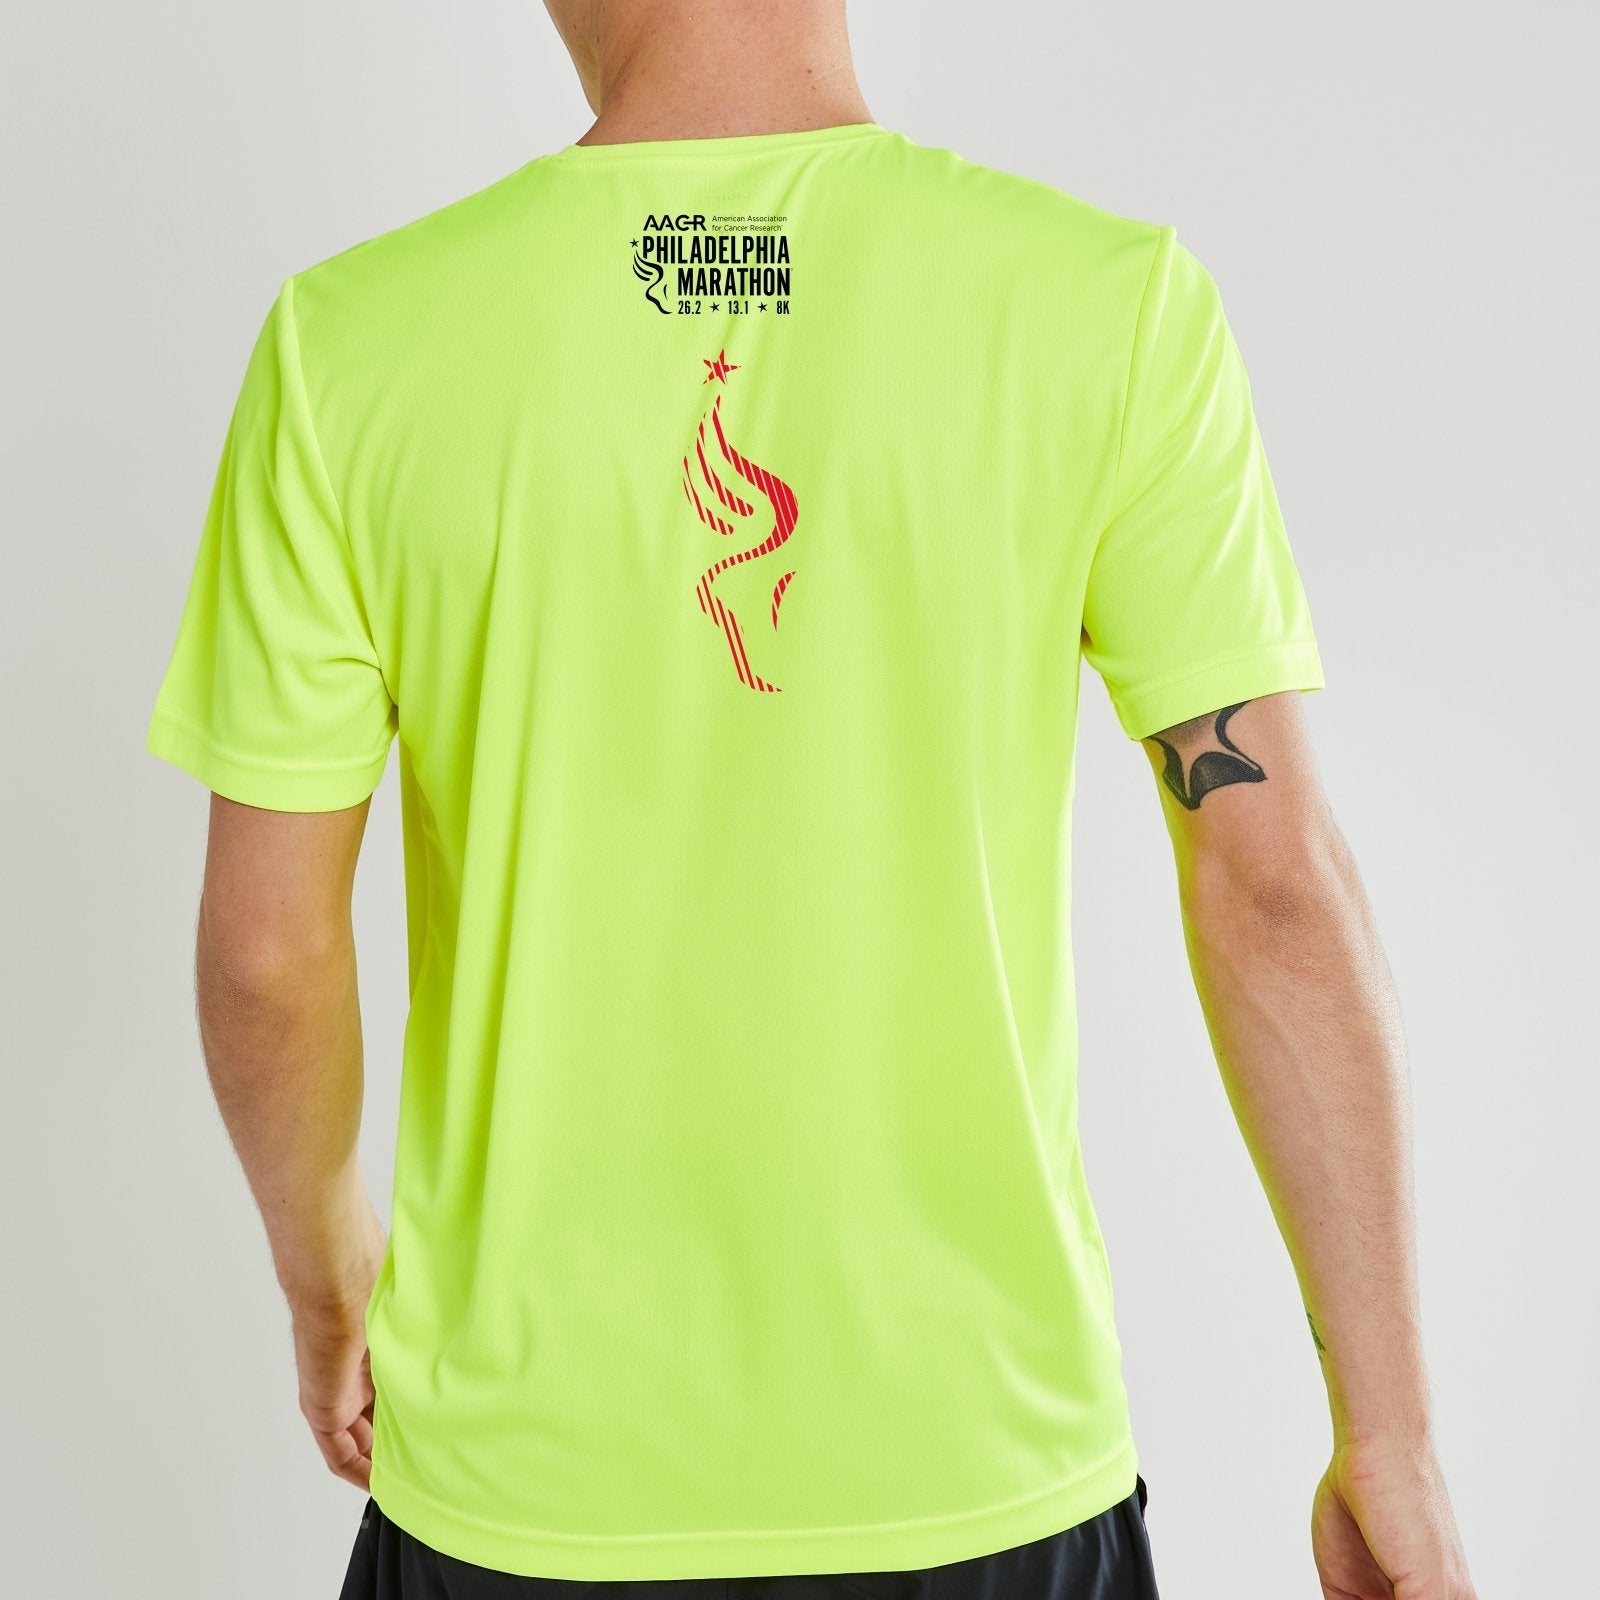 Men's SS Tech Tee -Hi Viz 'LCP Run Philly Design' - AACR Philadelphia Marathon